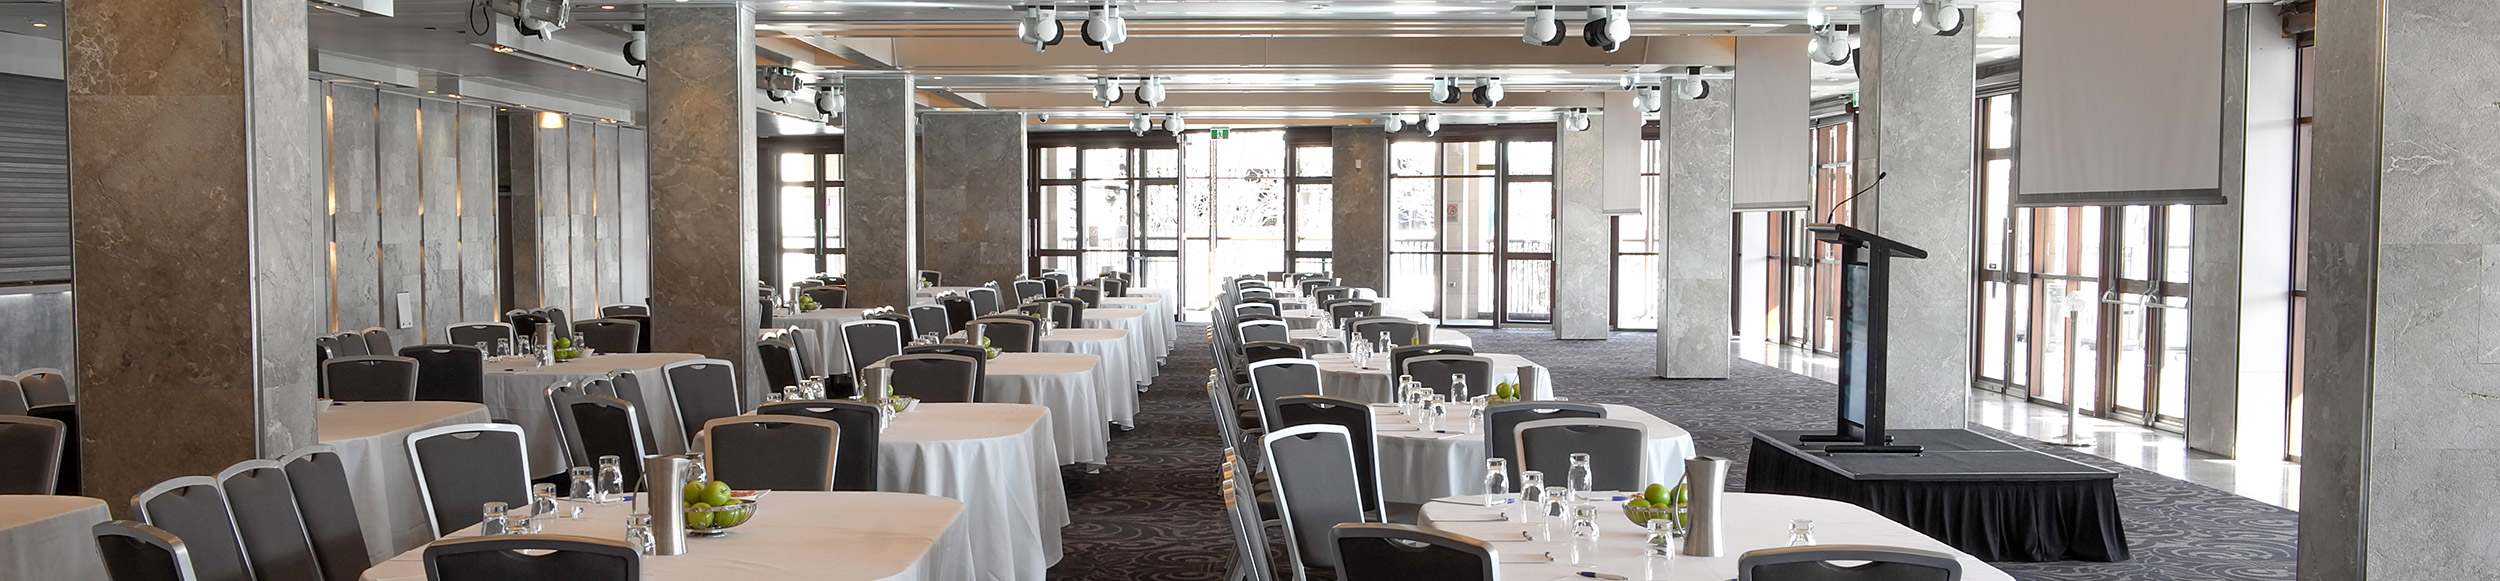 Iconic Waterfront Venues Sydney | Weddings, Conference, Meeting, University Balls & School Formal Venues | Dockside Group